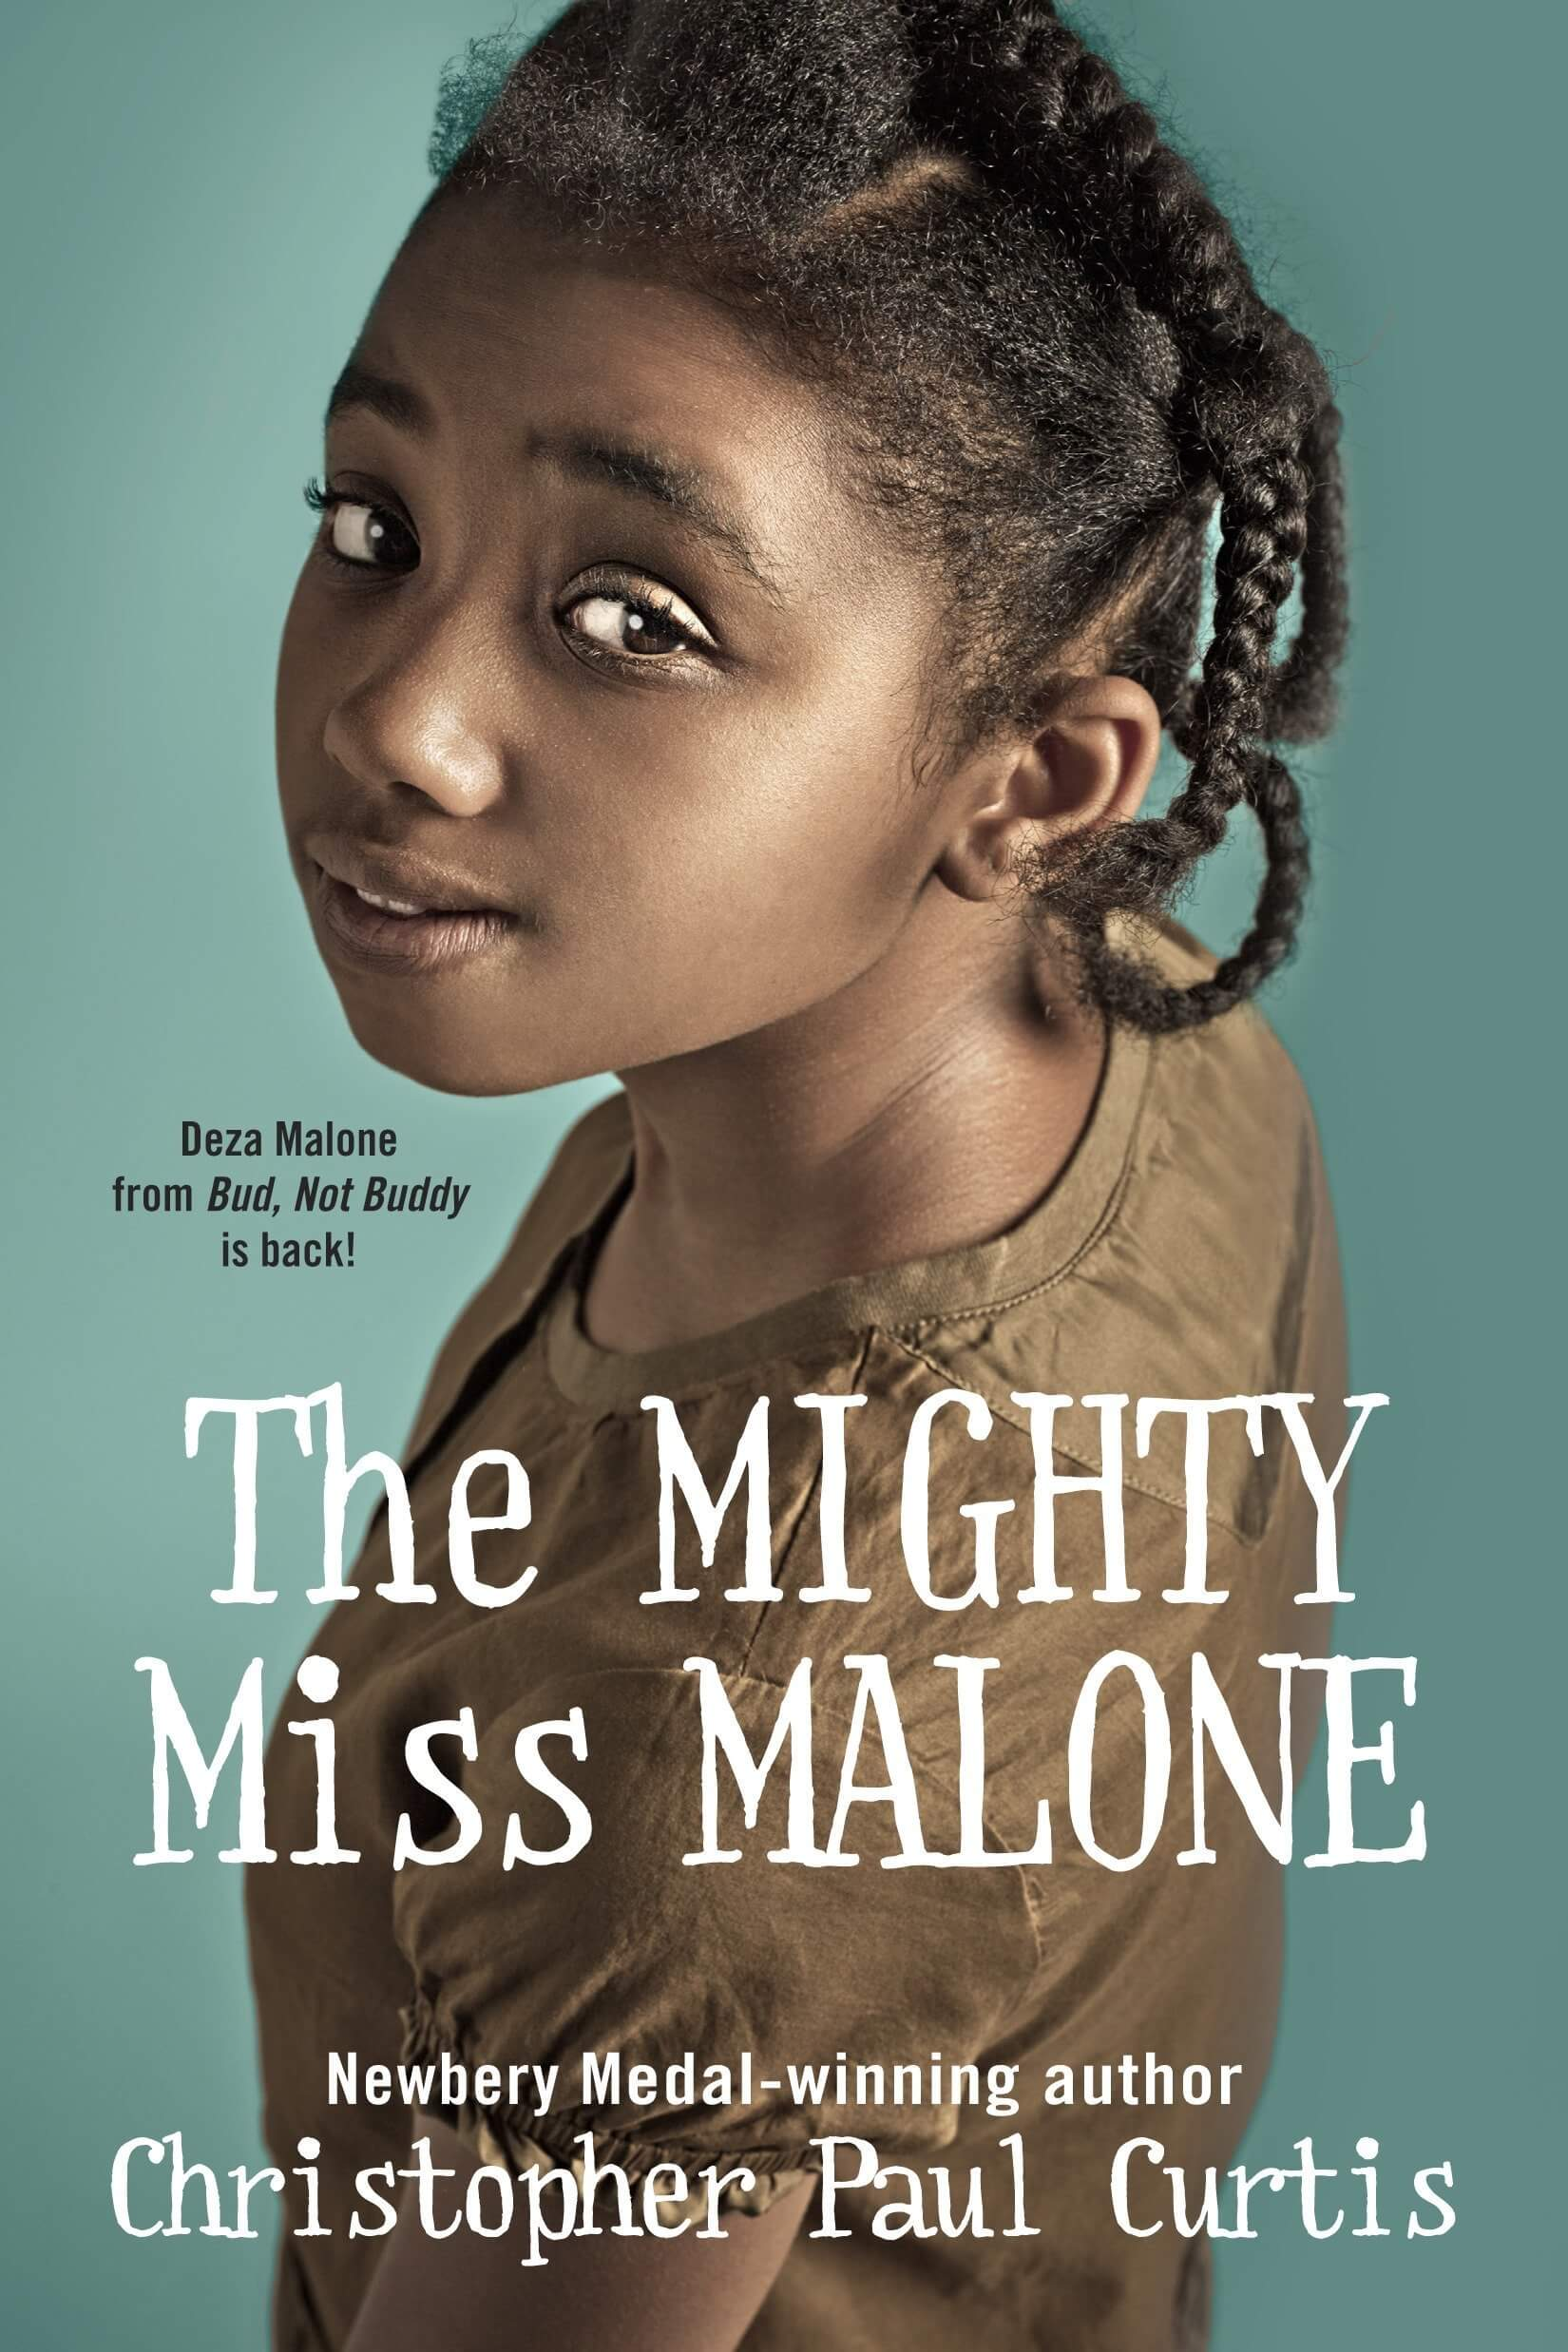 The Mighty Miss Malone Novel by Christopher Paul Curtis